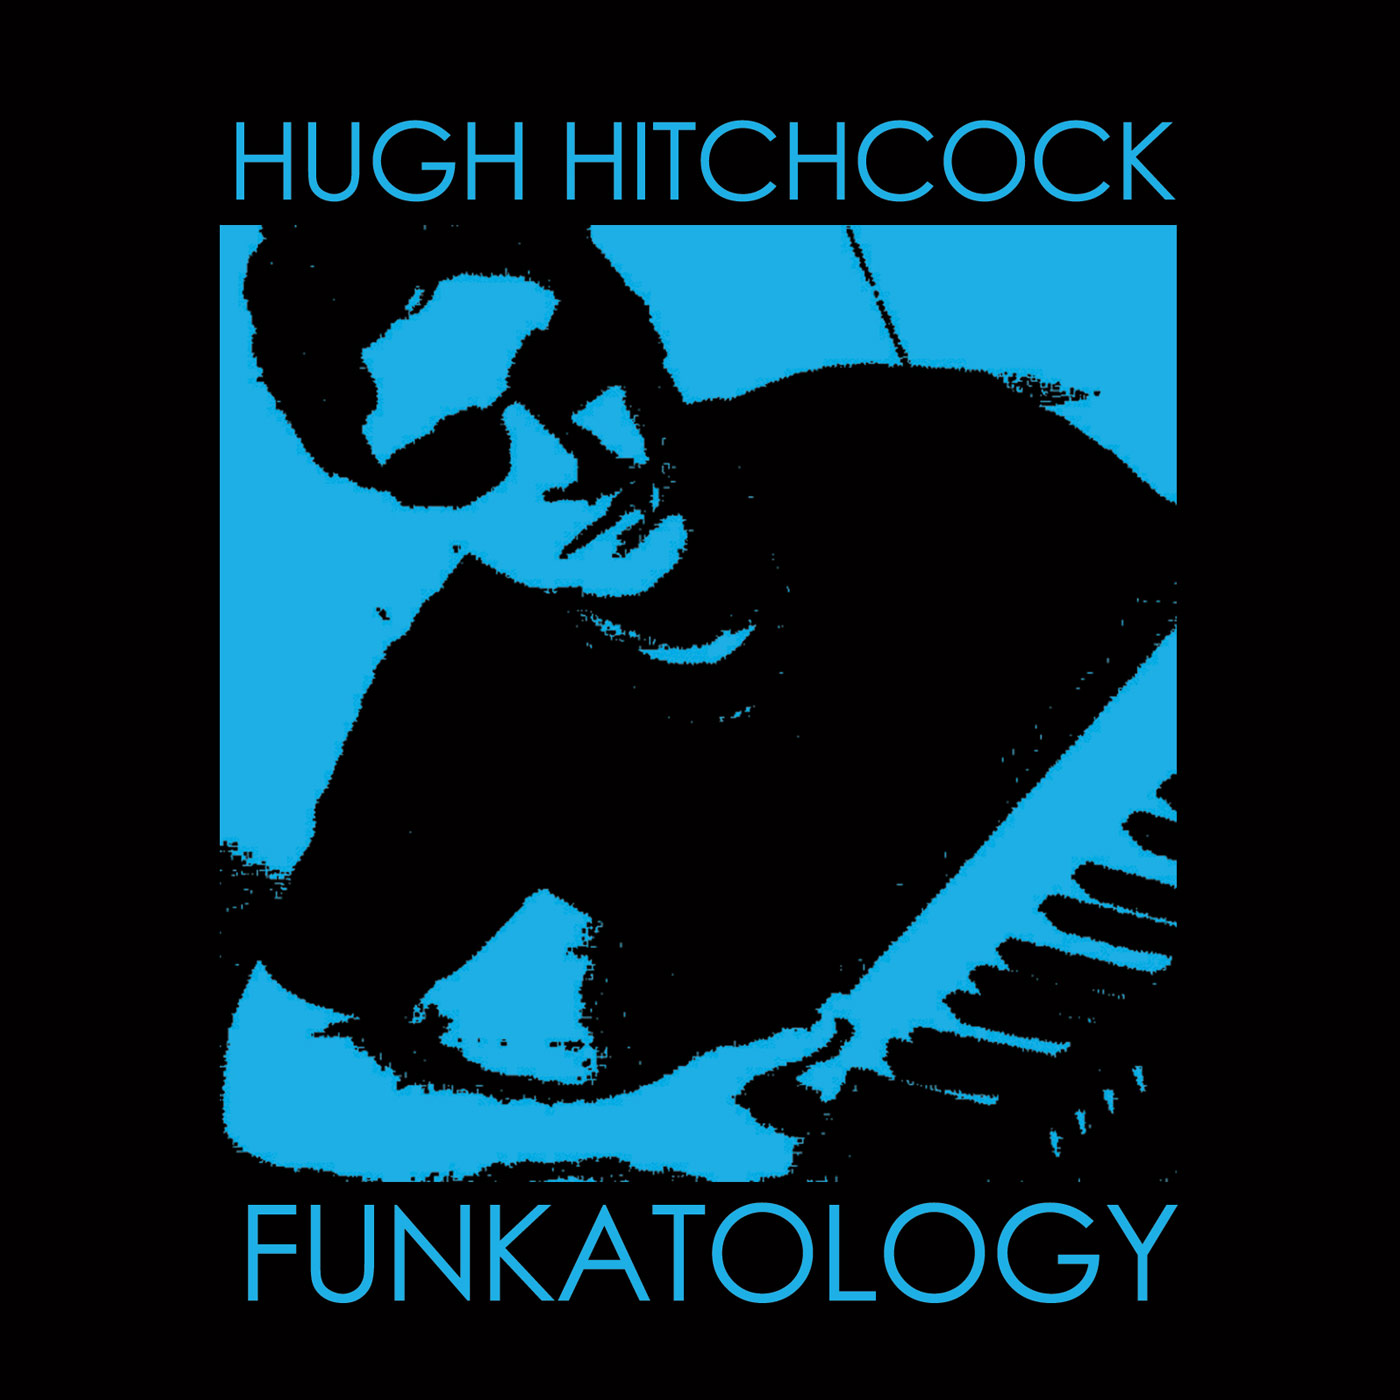 Funkatology by Hugh Hitchcock album cover